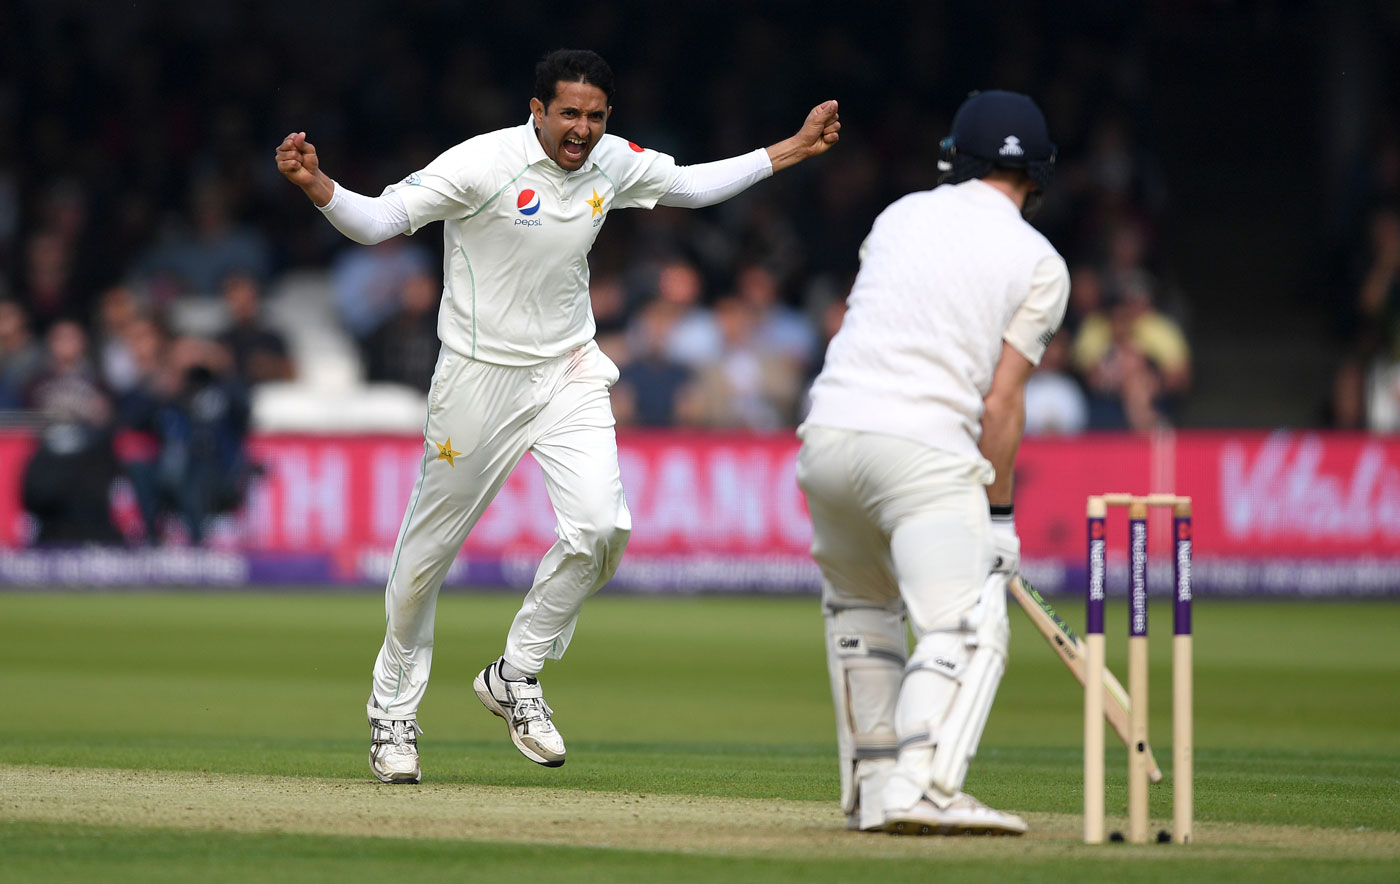 Mohammad Abbas and Hasan Ali impress in maiden appearance at Lord's